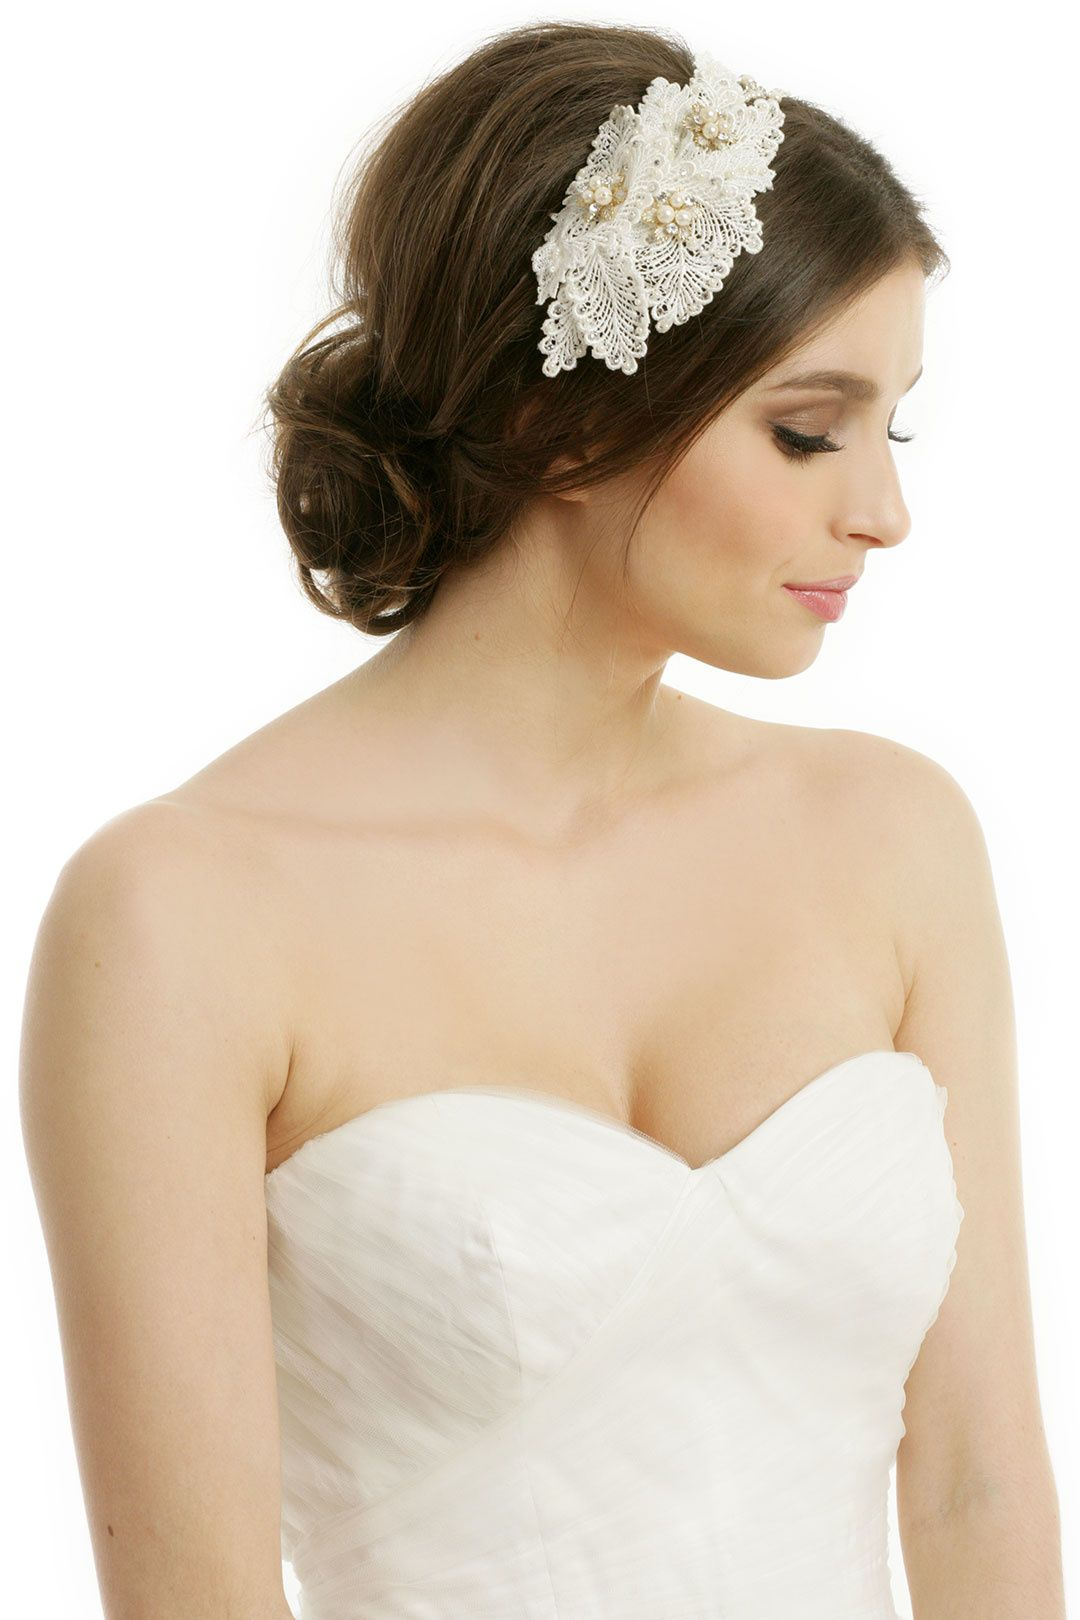 rent pretty in pearls headband by rtr bridal accessories for $25